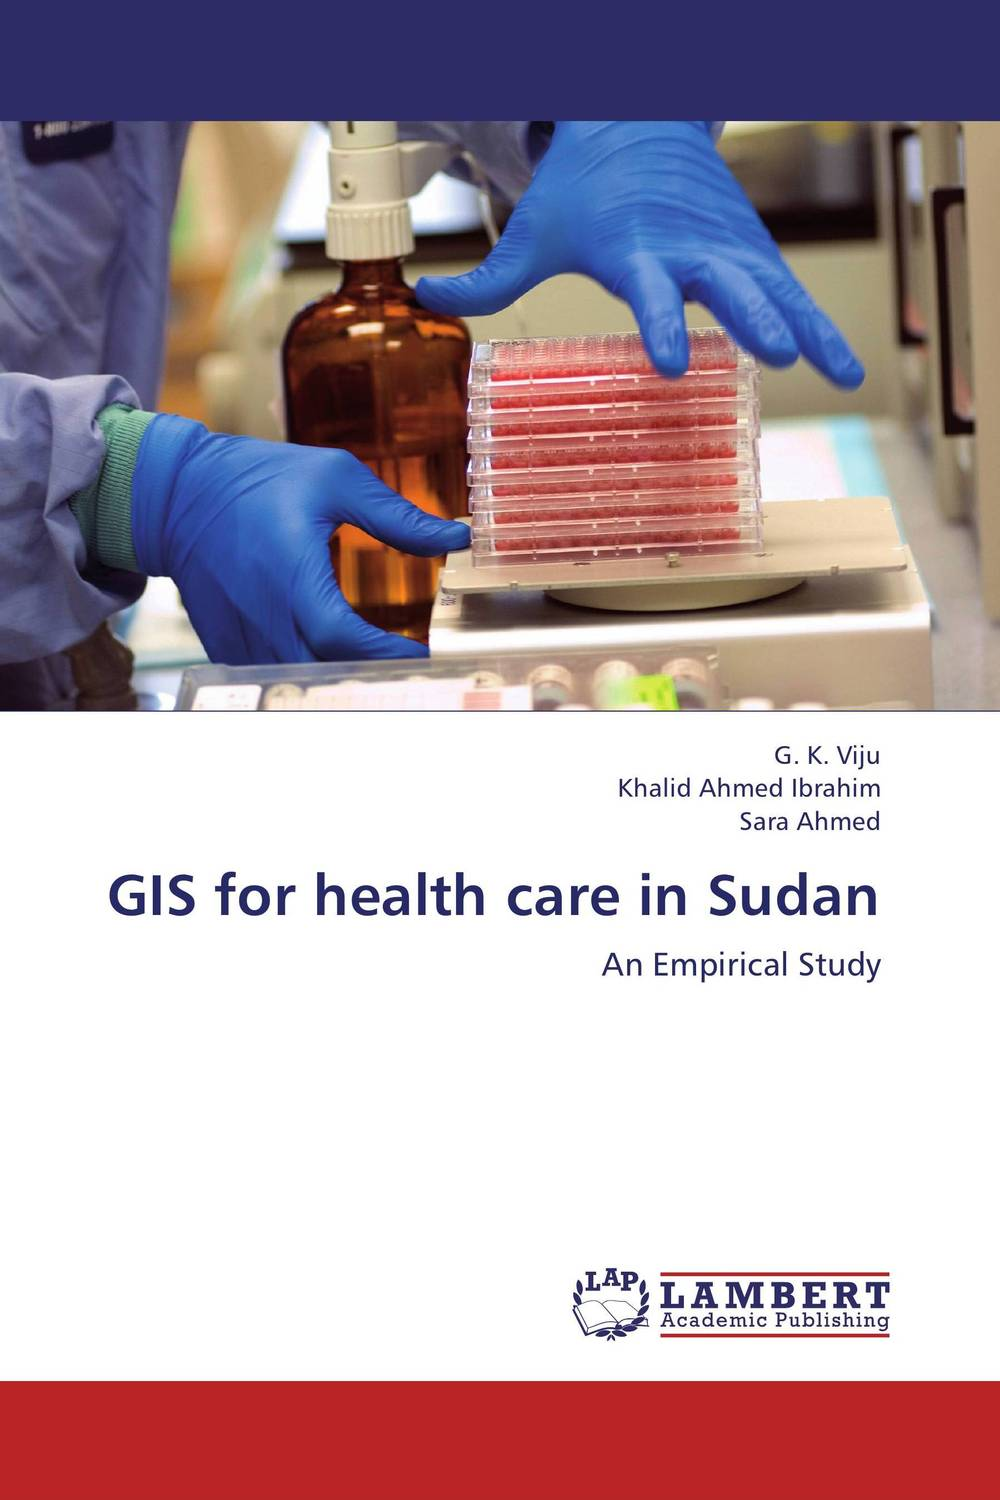 GIS for health care in Sudan gis